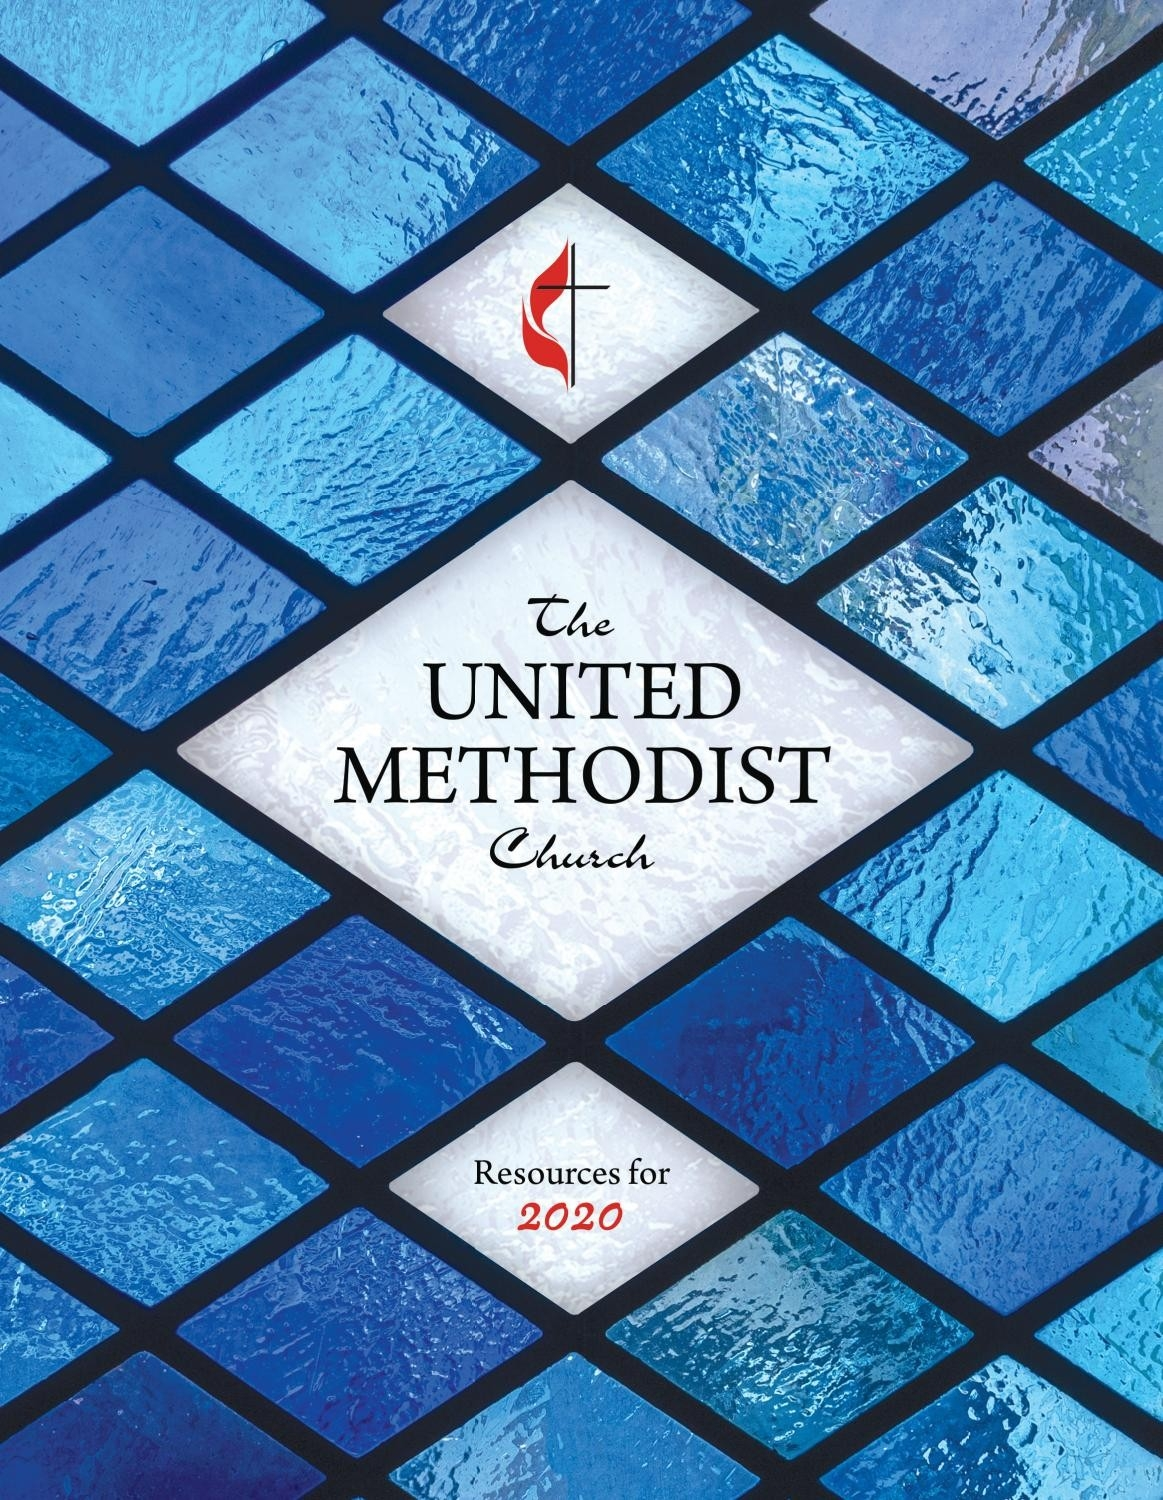 The United Methodist Church Resources For 2020United  What Is The United Methodist Church'S Lectionary For Lent In 2020